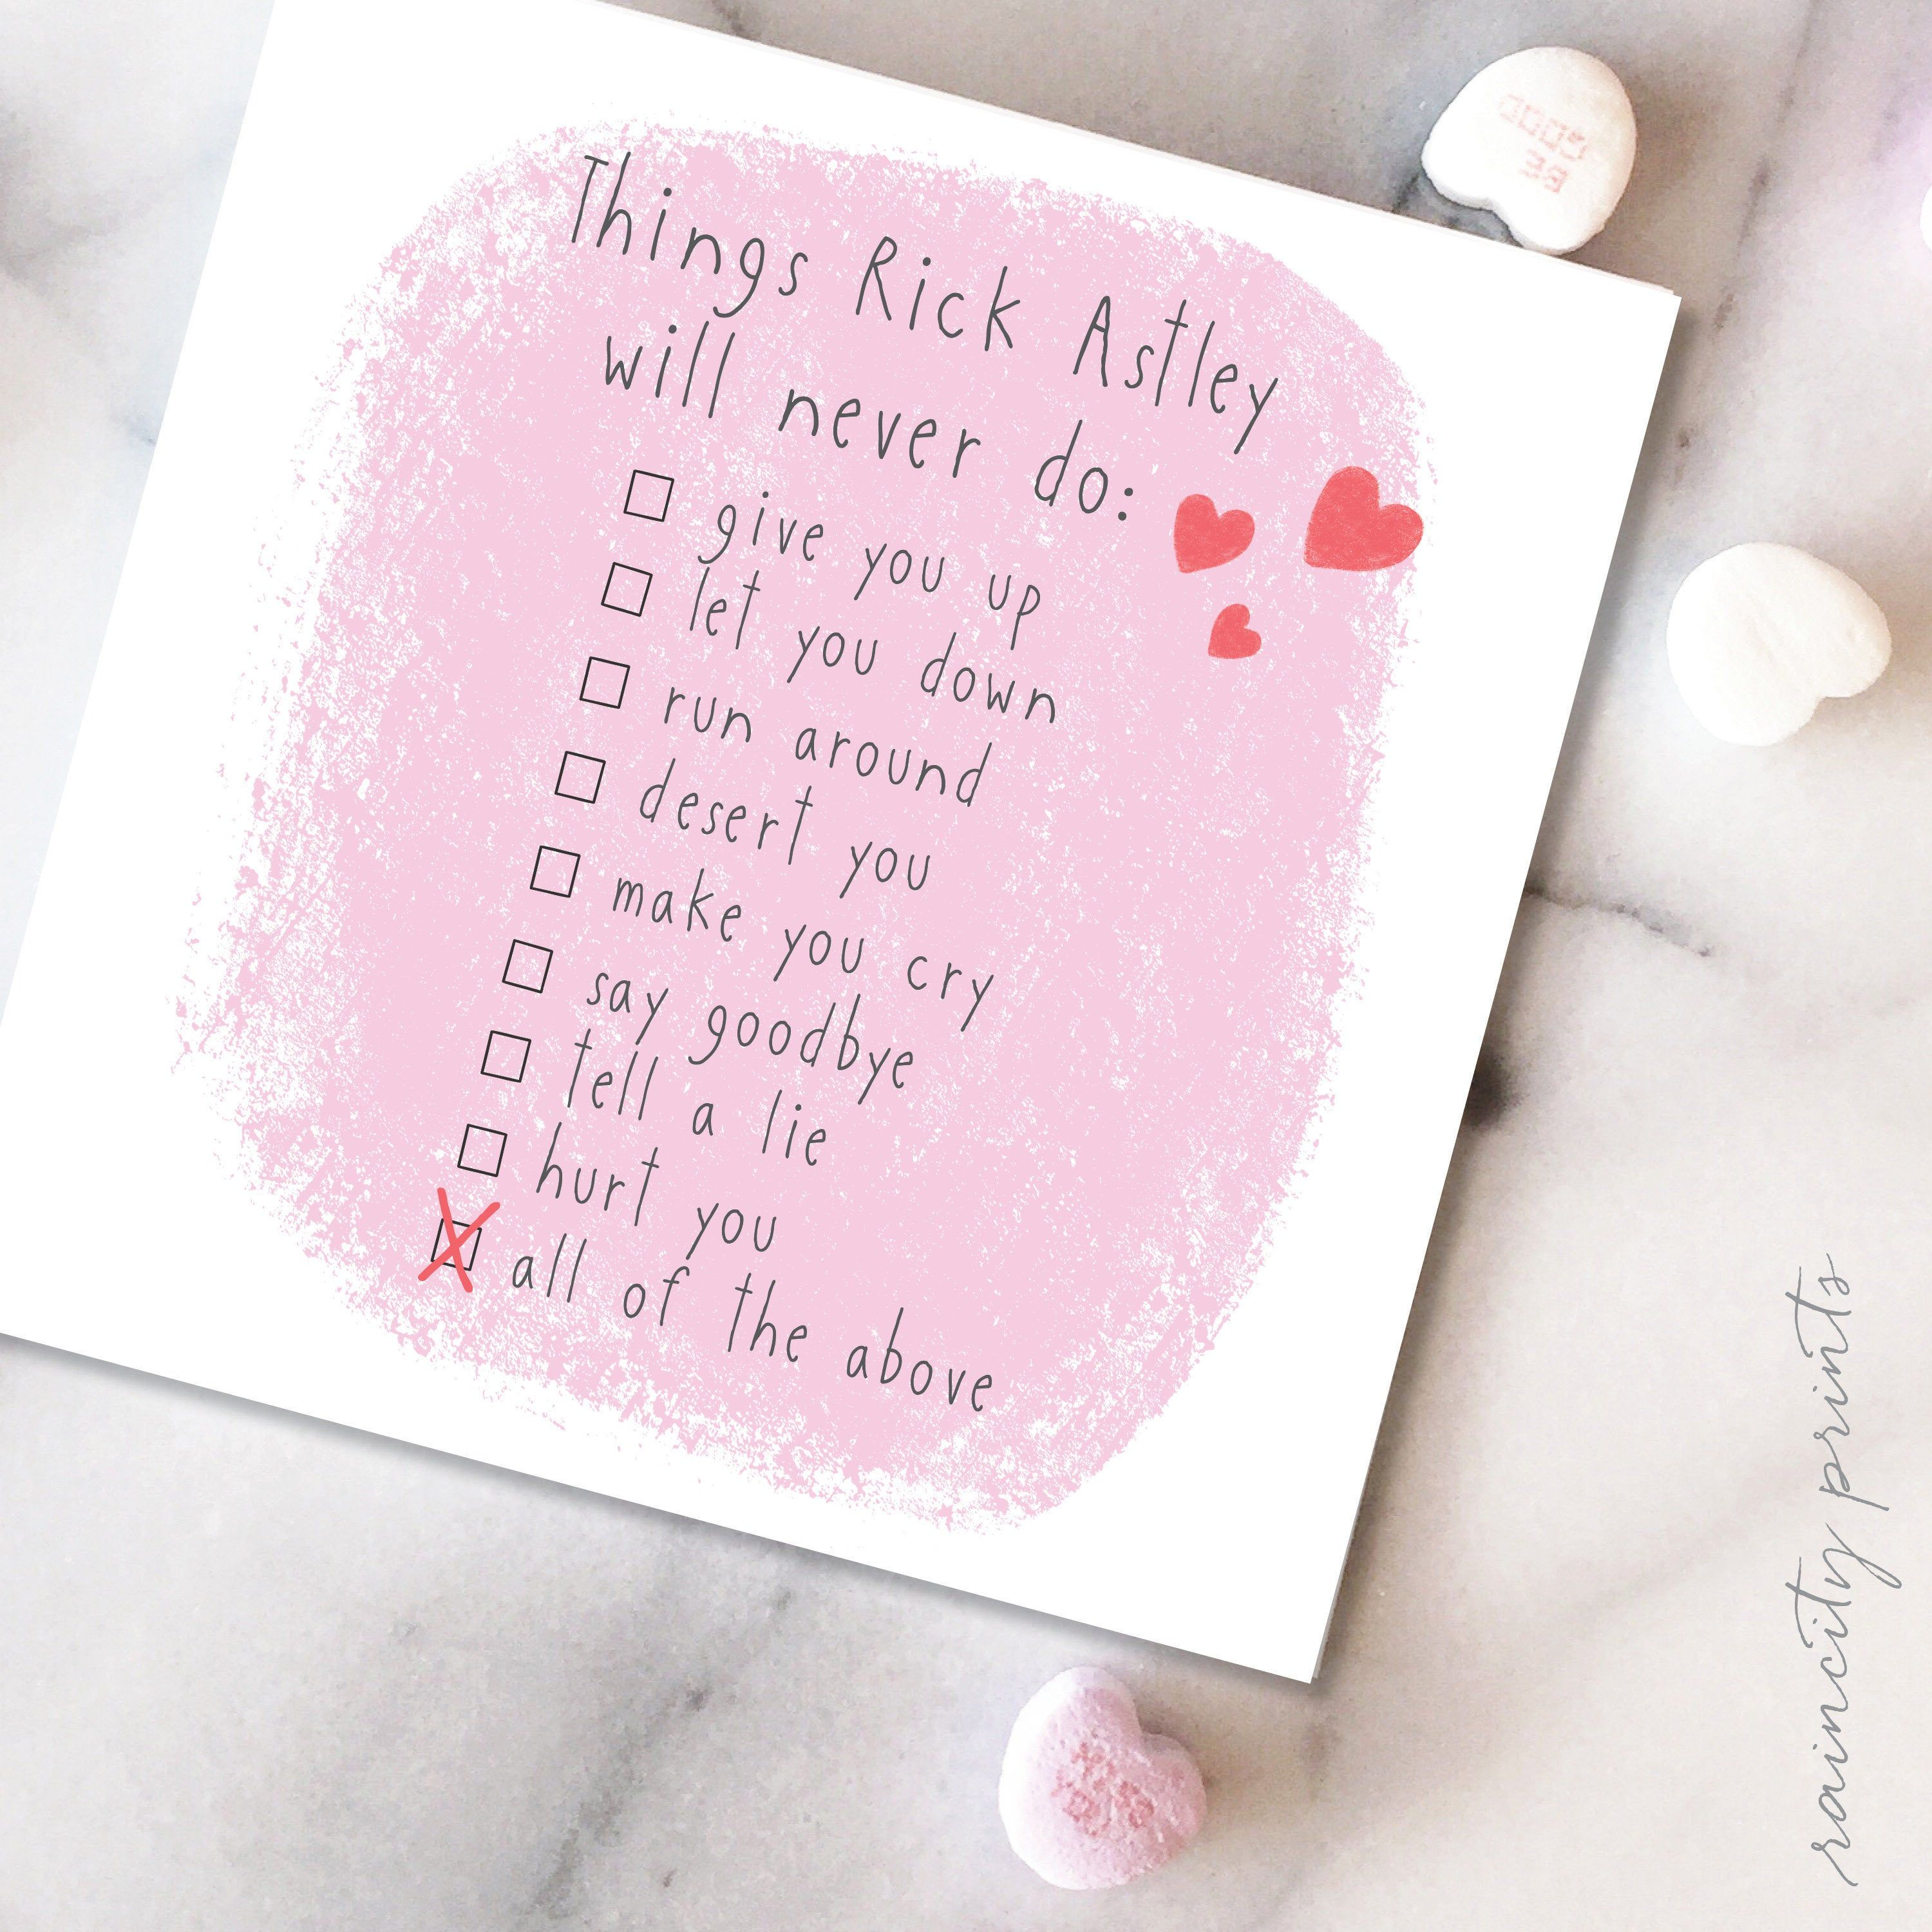 Rick Astley Never Gonna Give You Up Valentines Day Card Funny Etsy Funny Love Cards Rick Astley Give You Up